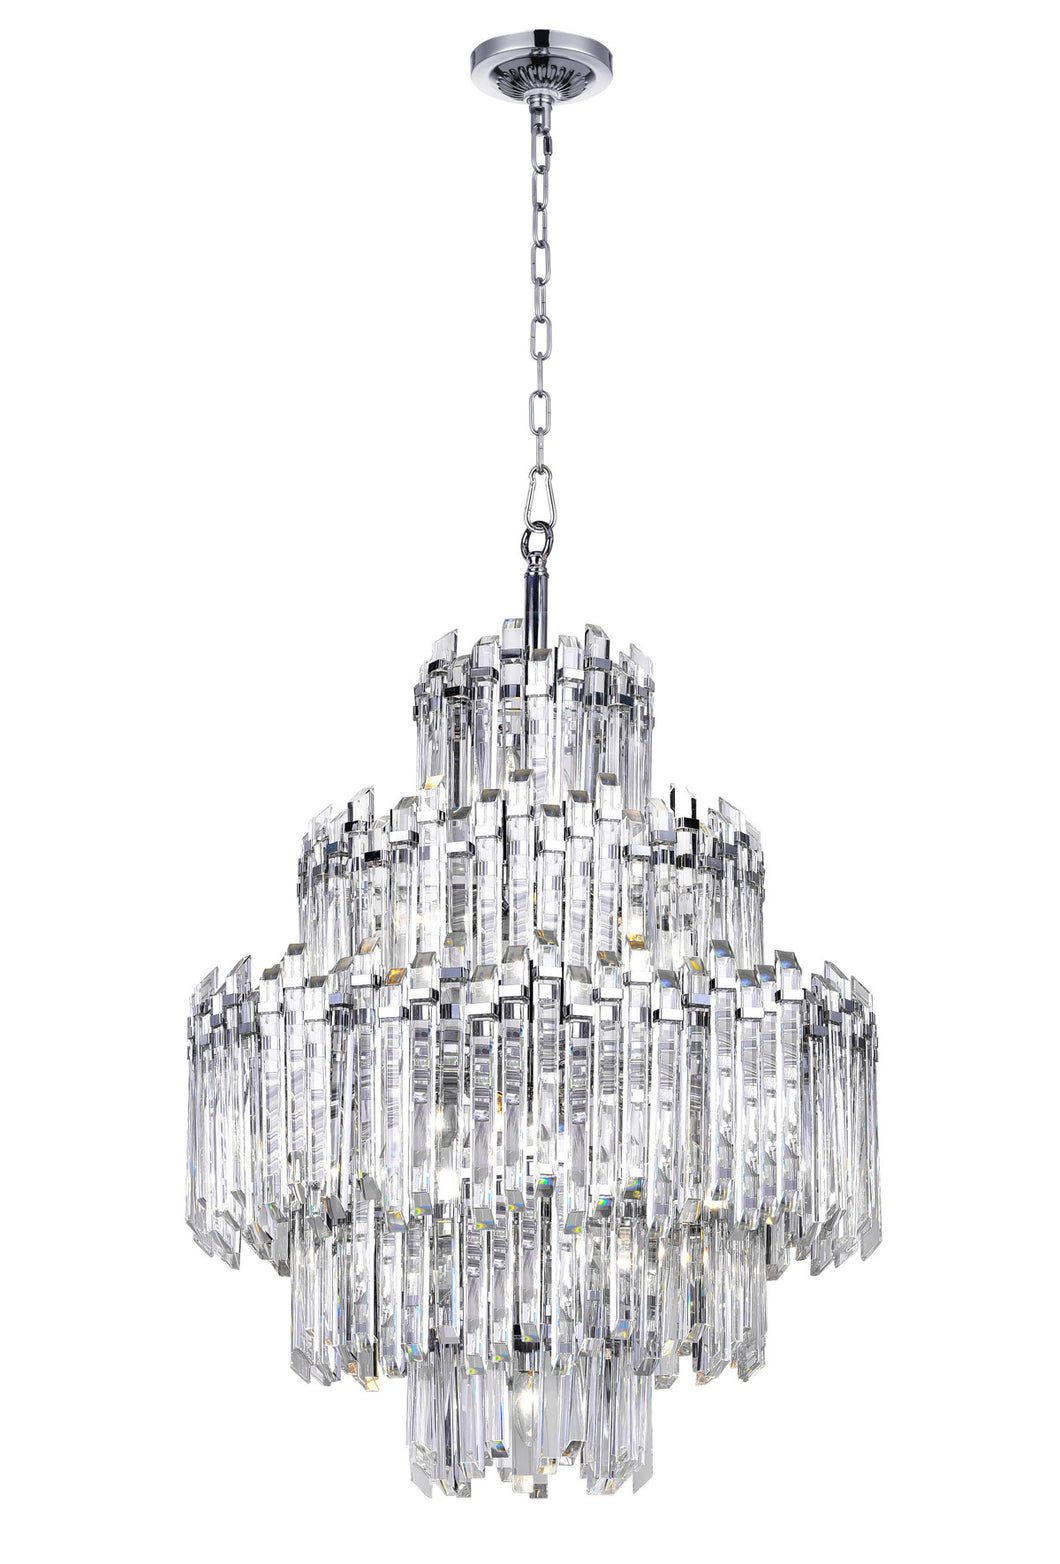 15 Light Chandelier with Chrome Finish